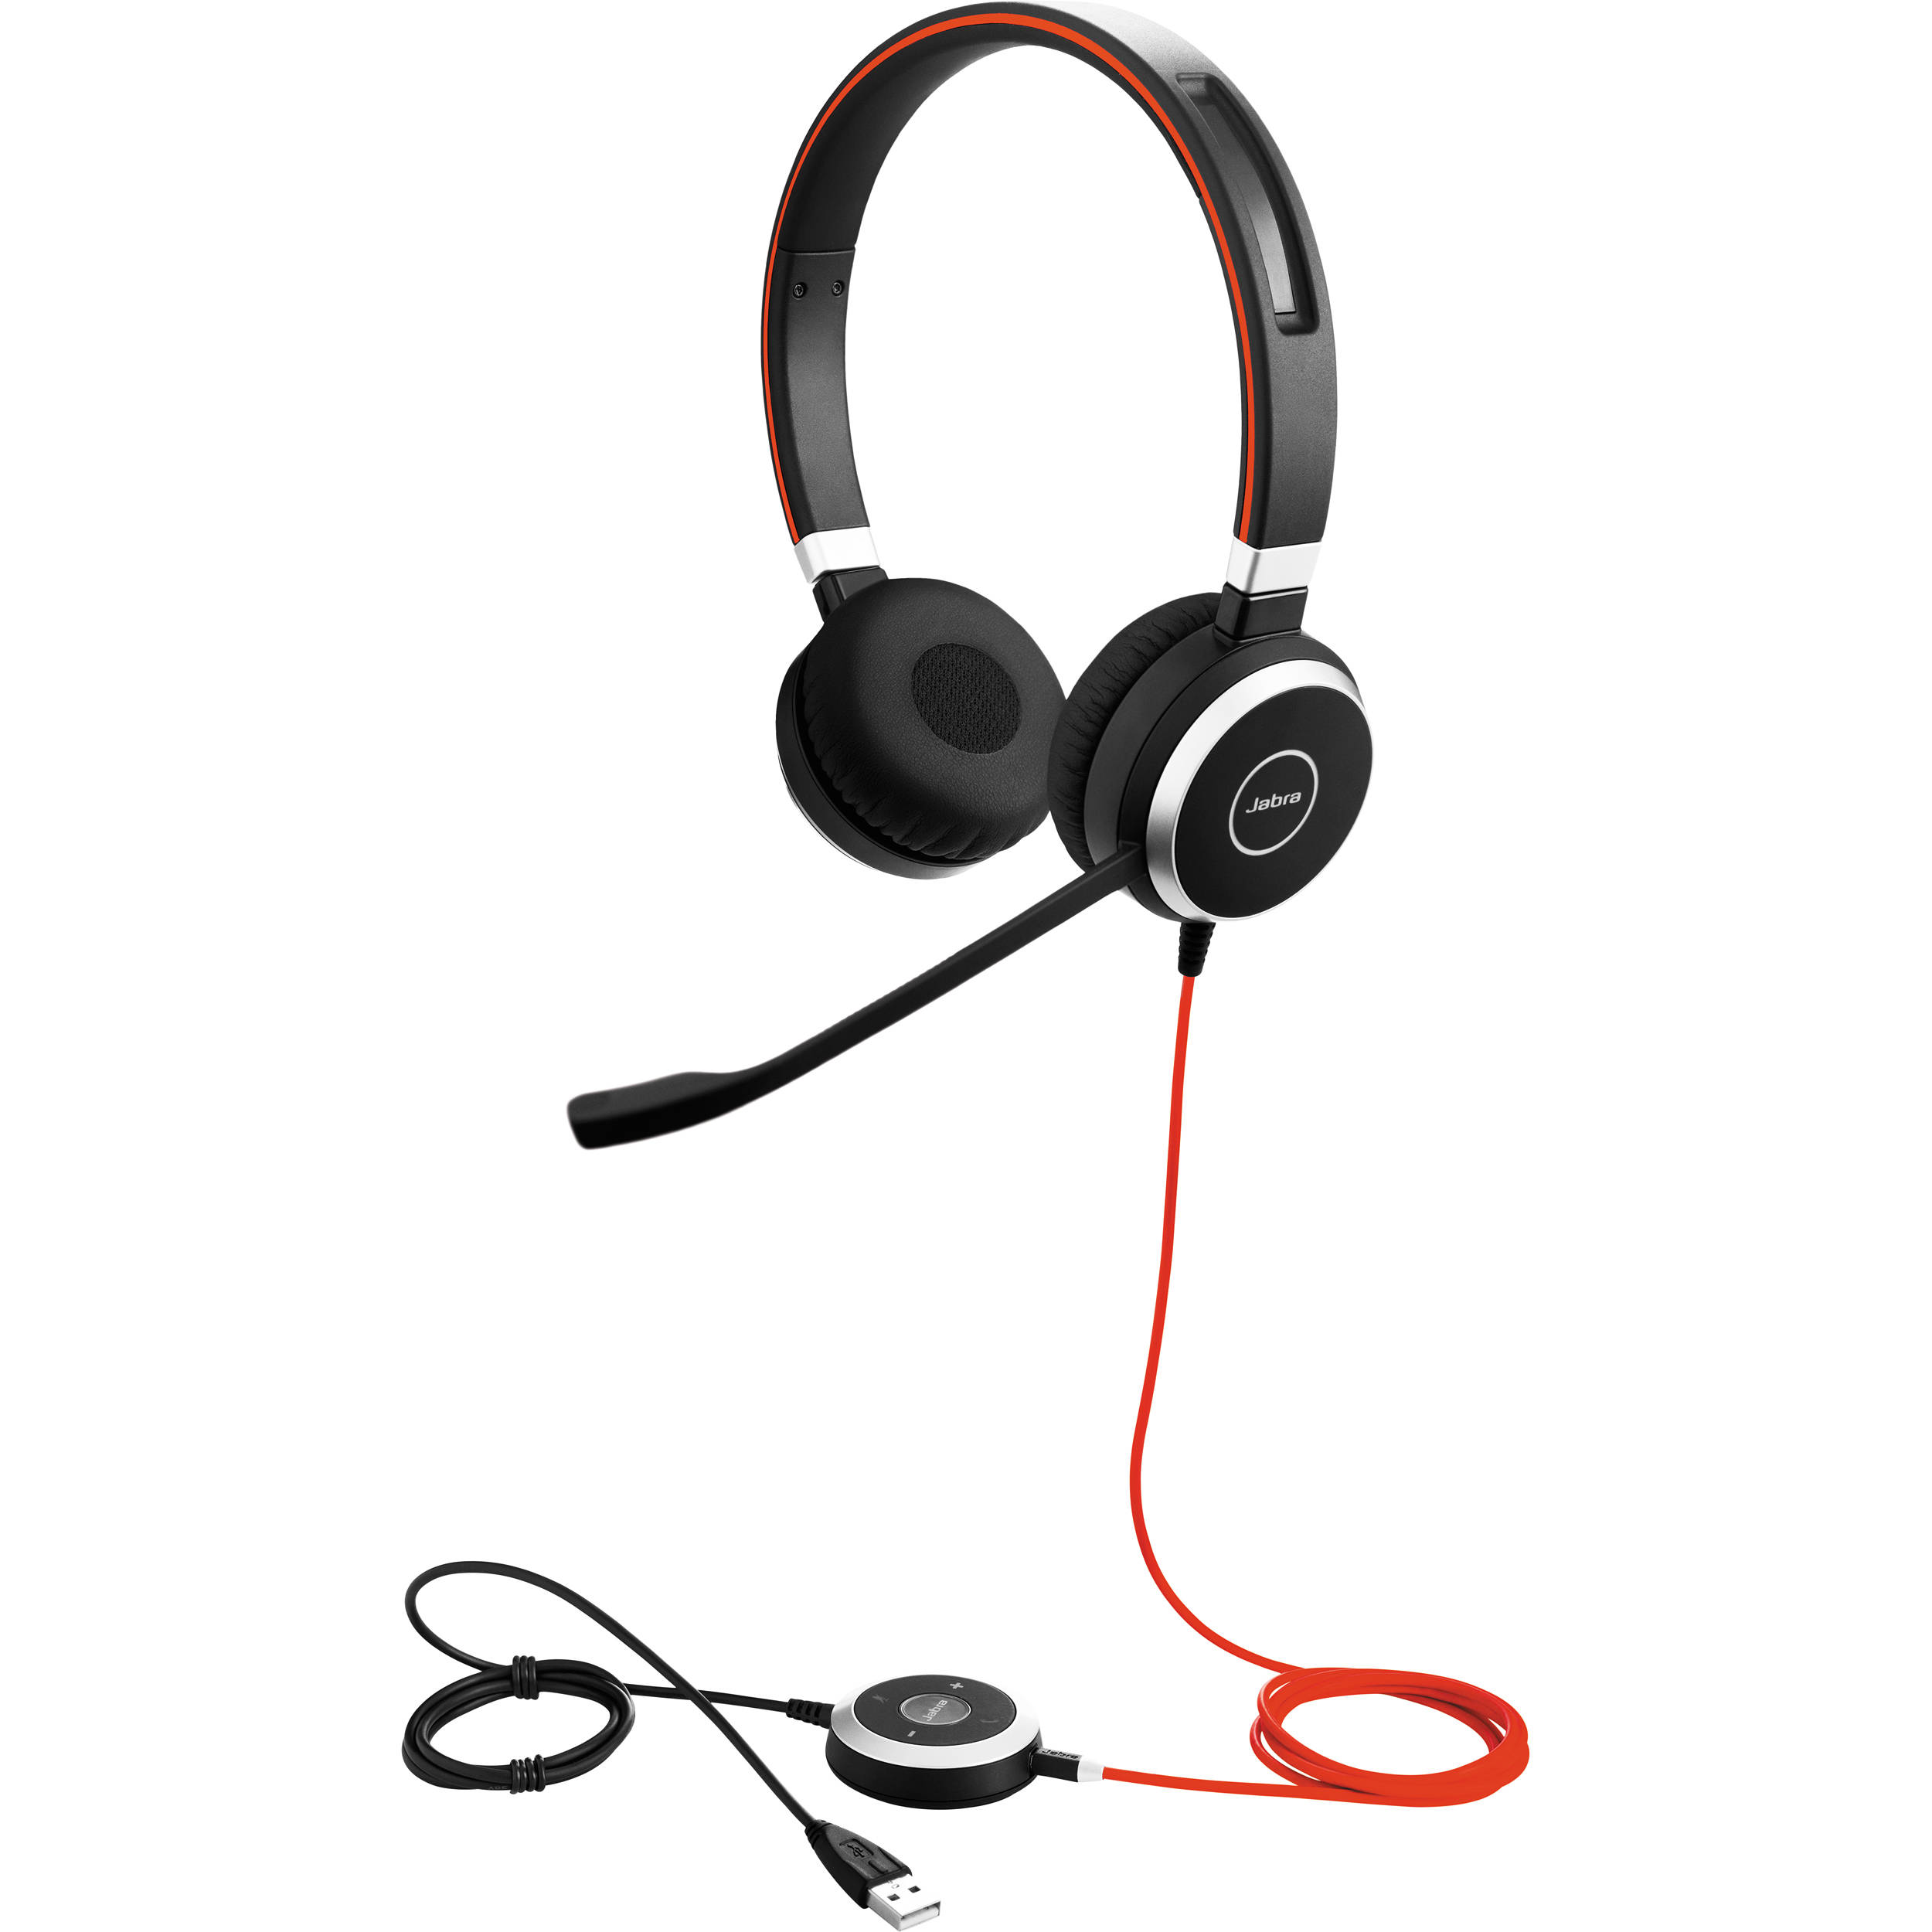 jabra sp700 how to connect